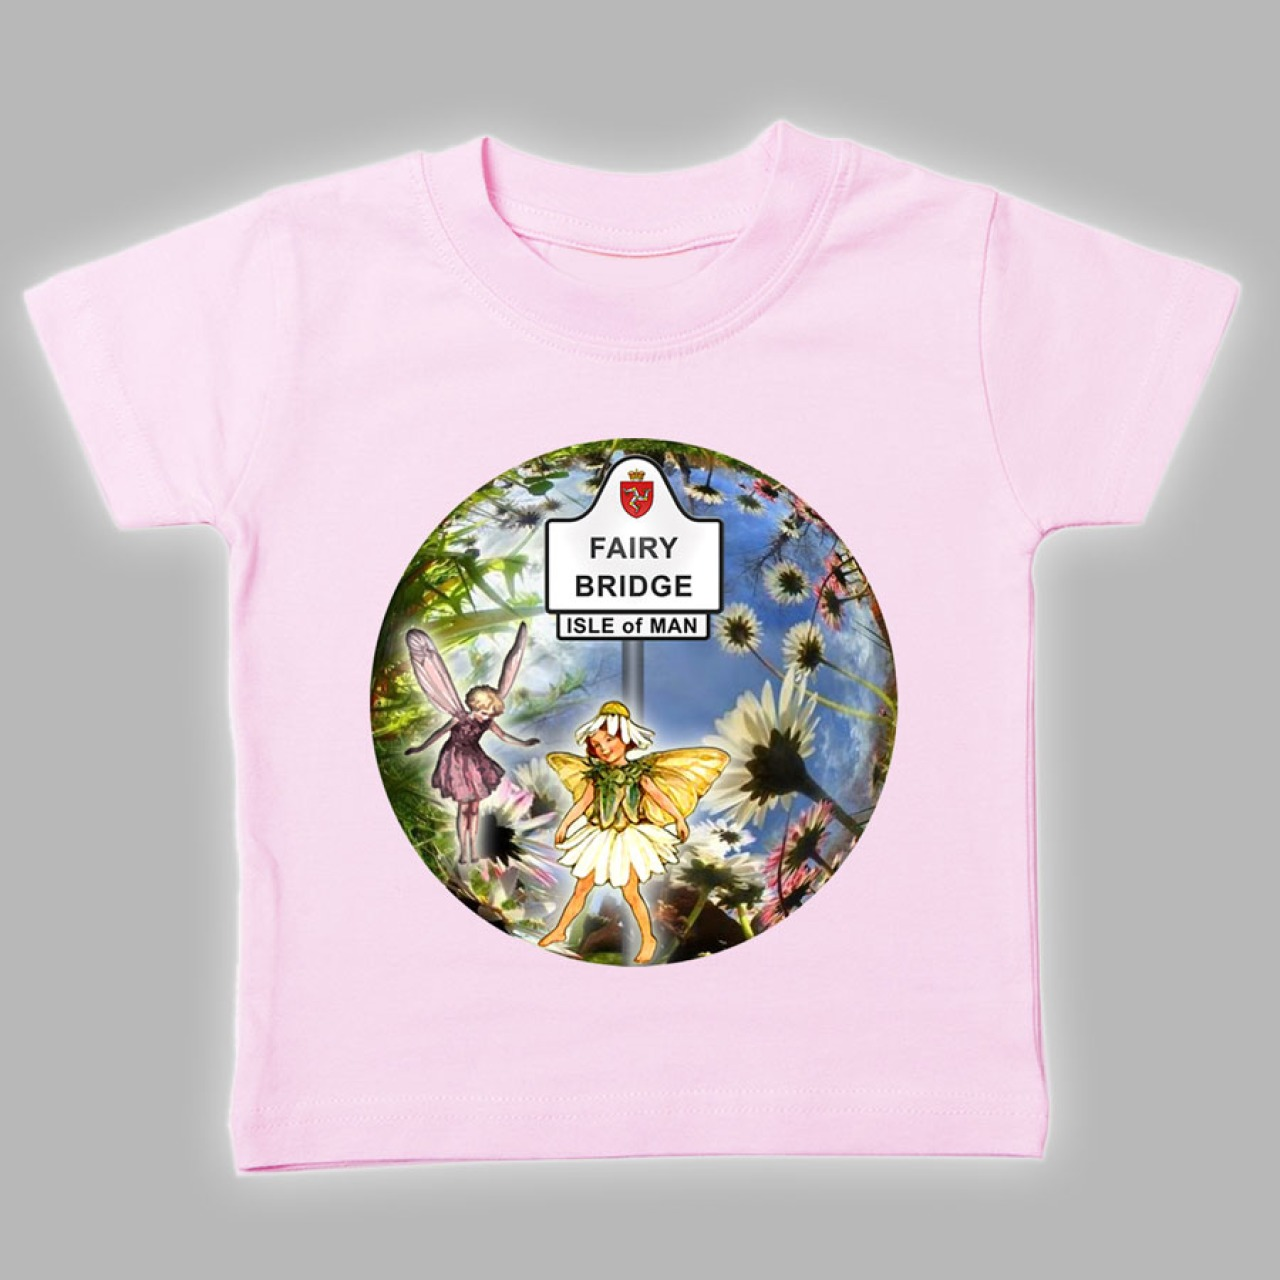 Manx fairy baby t shirt mbt 630 babies printed t for T shirt printing for babies